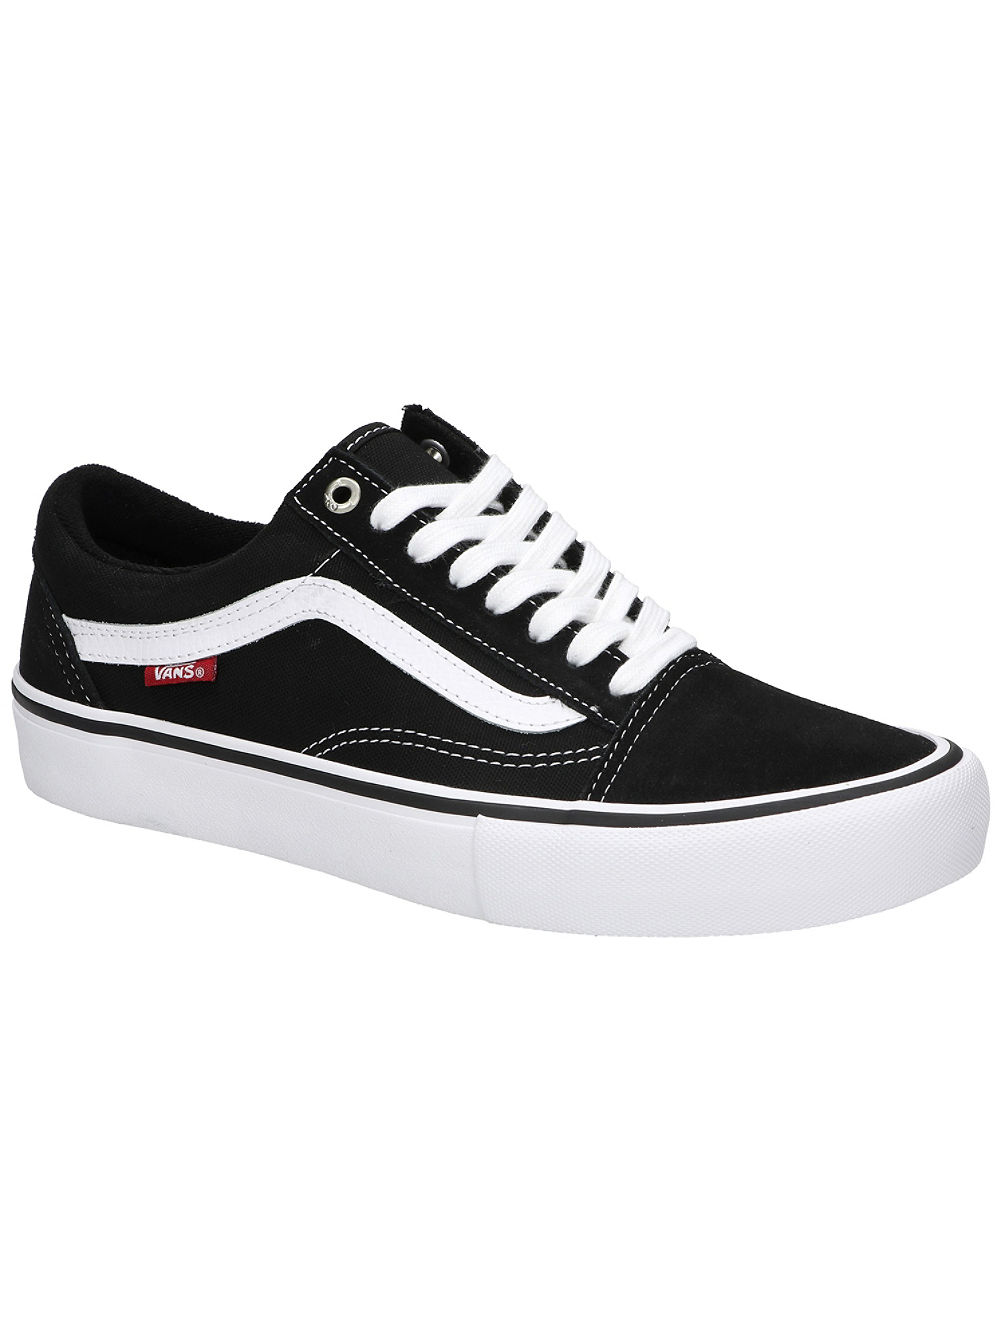 Buy Vans Old Skool Pro Skate Shoes online at Blue Tomato